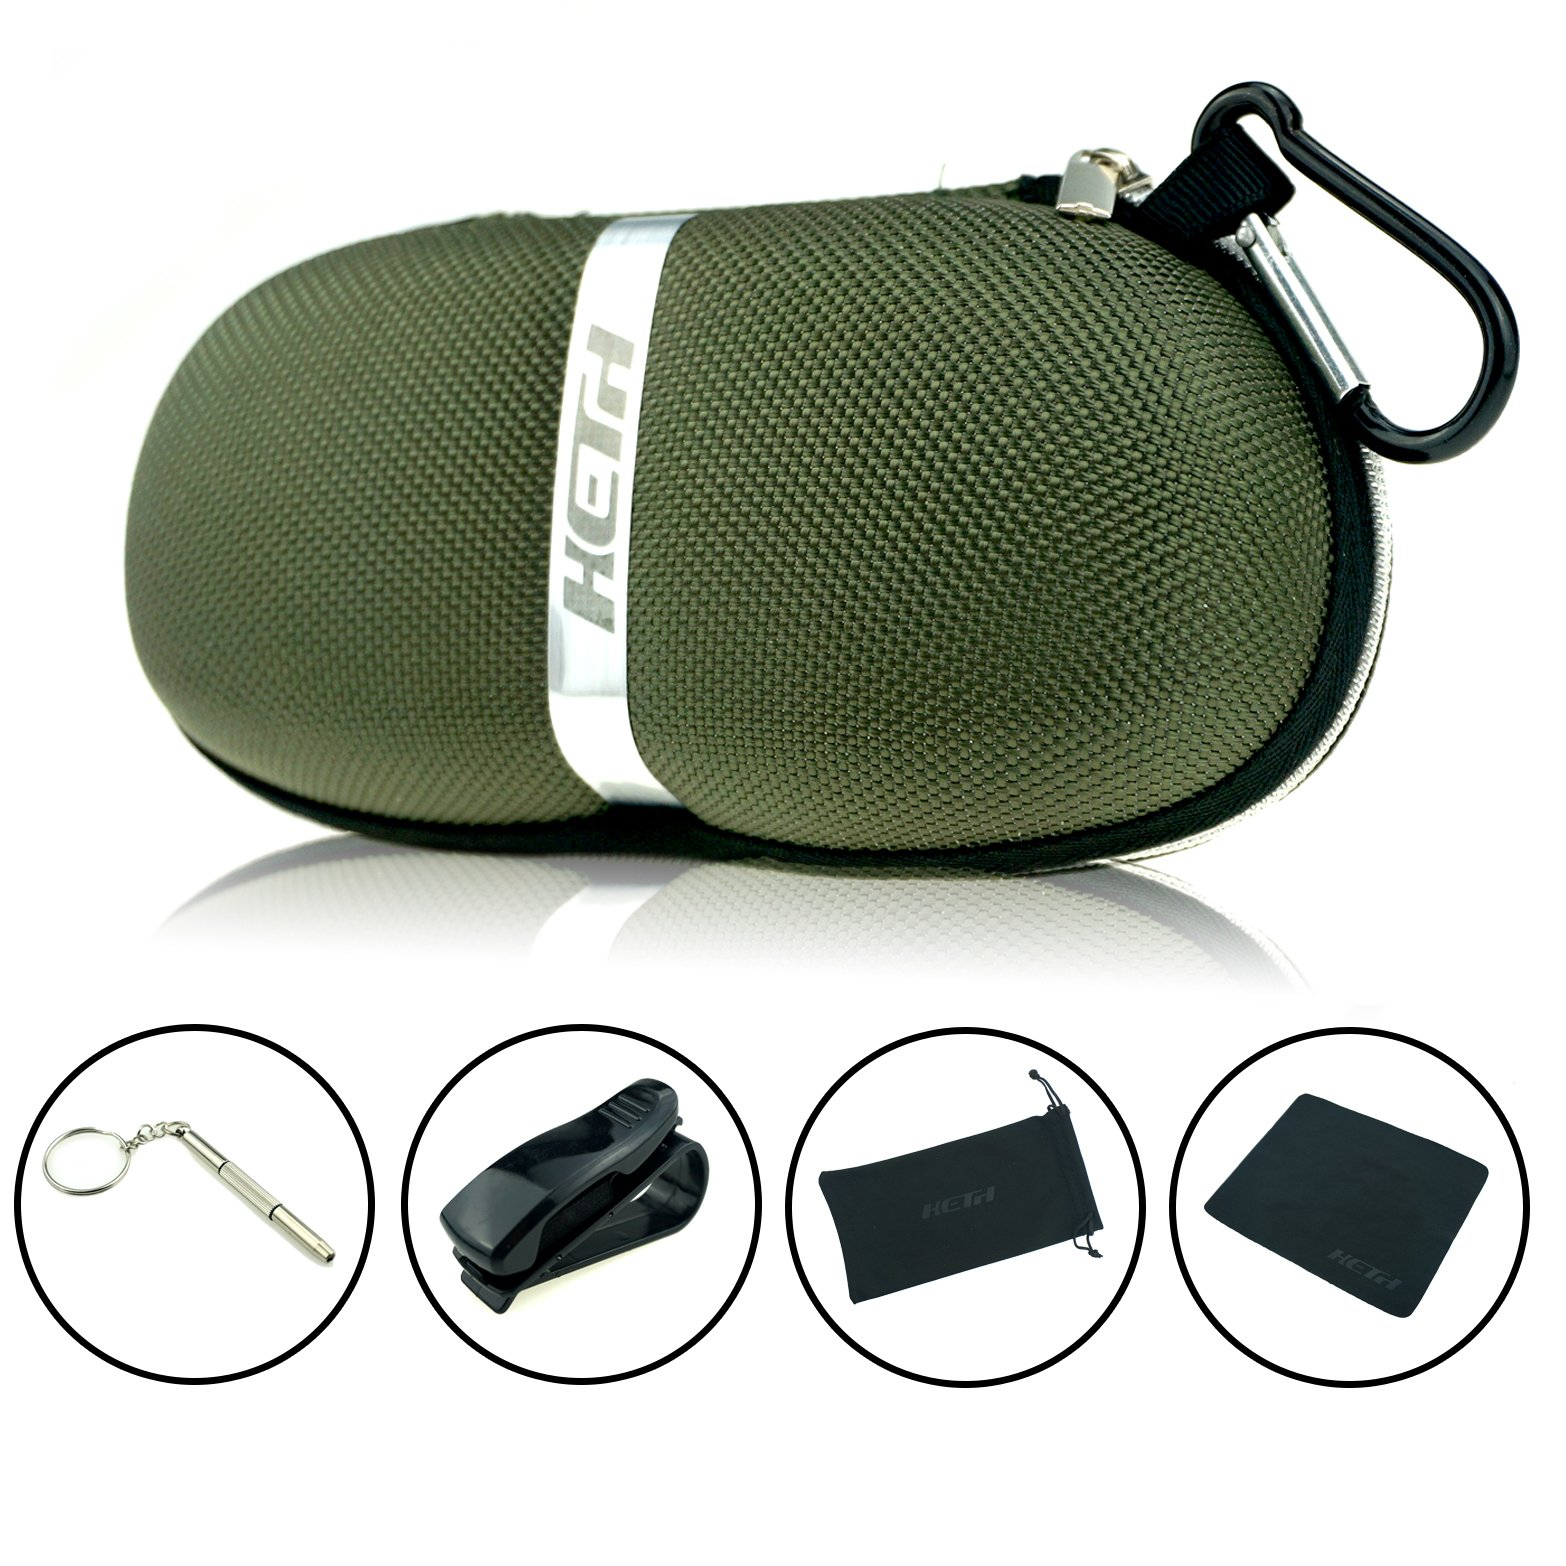 Sunglasses Cases,Semi Hard Portable compressive Strength Travel Zipper Eyeglass Cases with Carabiner. (Army Green) by Heth